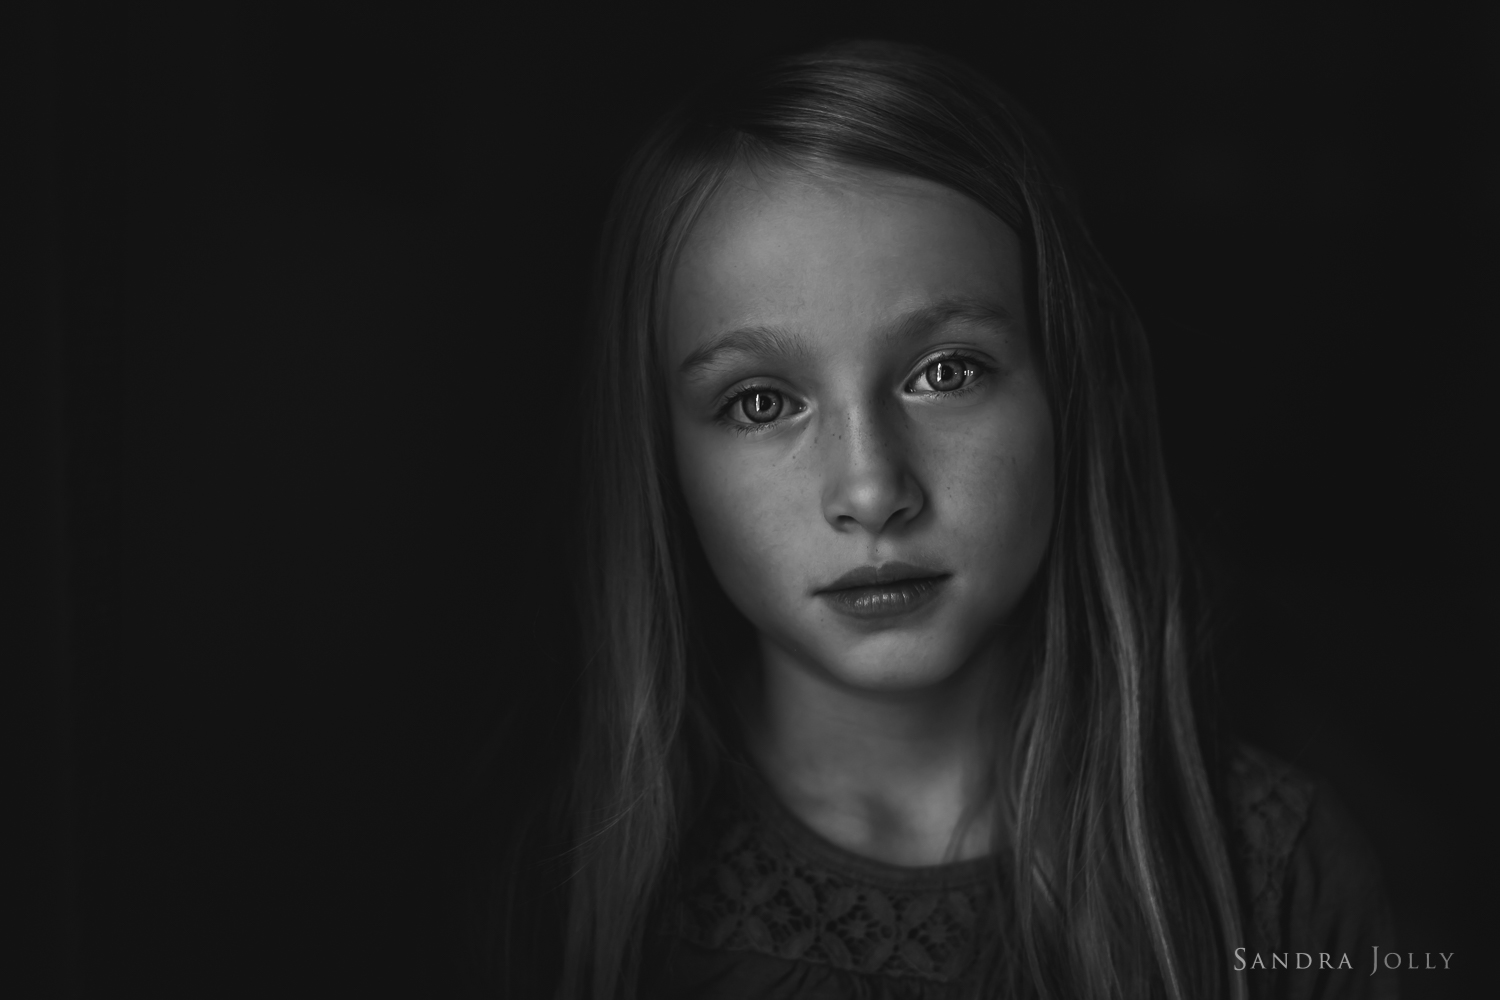 dramatic-portrait-of-young-girl-by-stockholm-familjefotograf-sandra-jolly.jpg